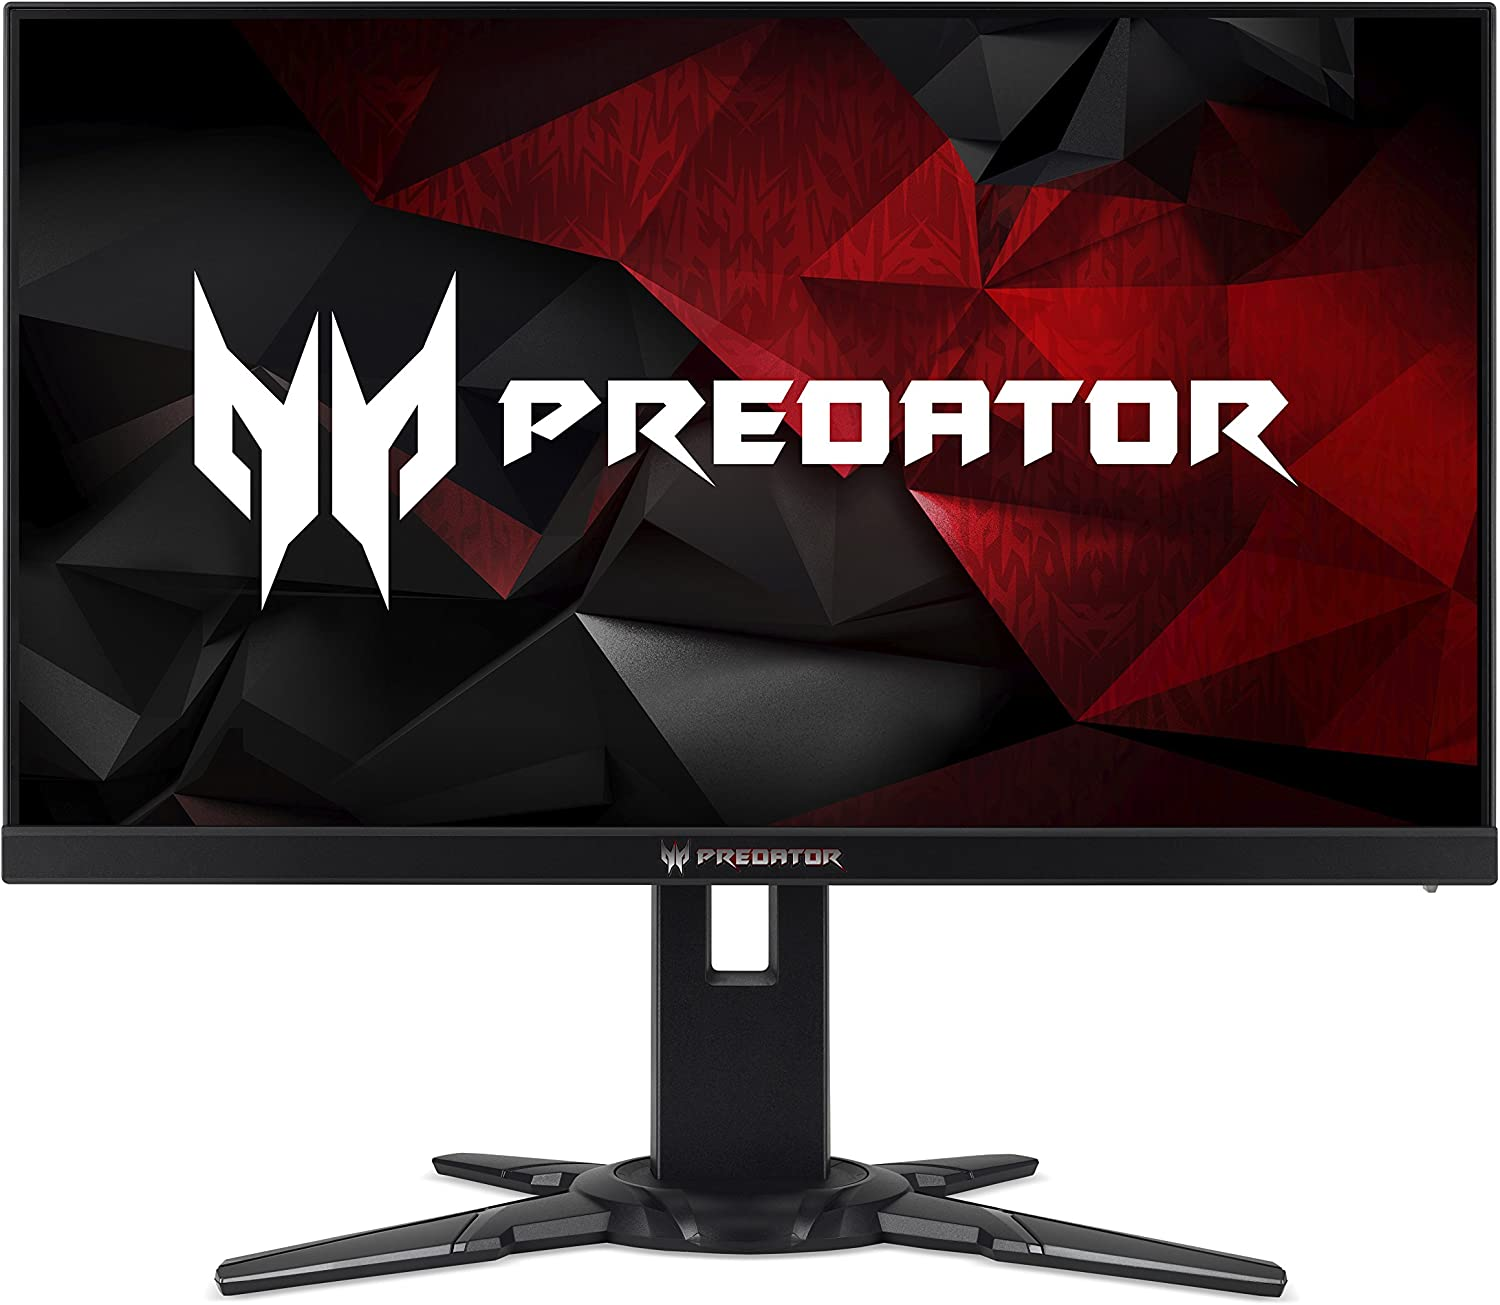 "Acer Predator XB272 bmiprz 27"" Full HD (1920x1080) NVIDIA G-SYNC TN Monitor, (Display Port & HDMI Port, 240Hz)"